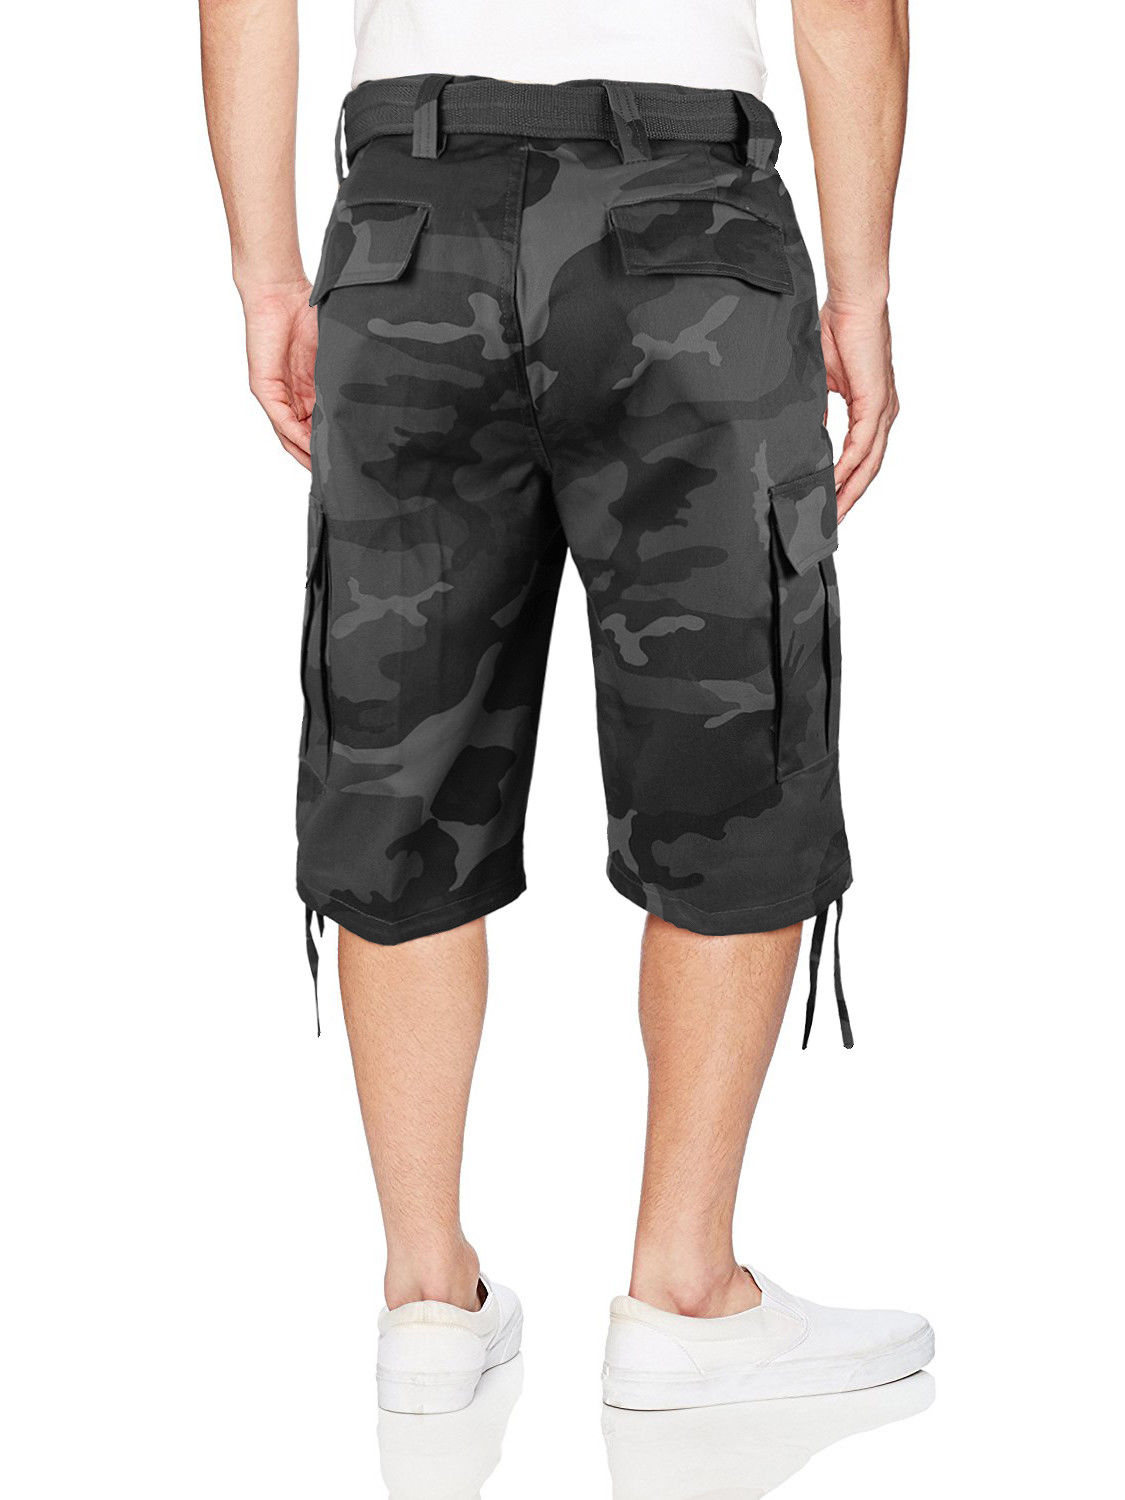 Men-039-s-Tactical-Military-Army-Camo-Camouflage-Slim-Fit-Cargo-Shorts-With-Belt thumbnail 15